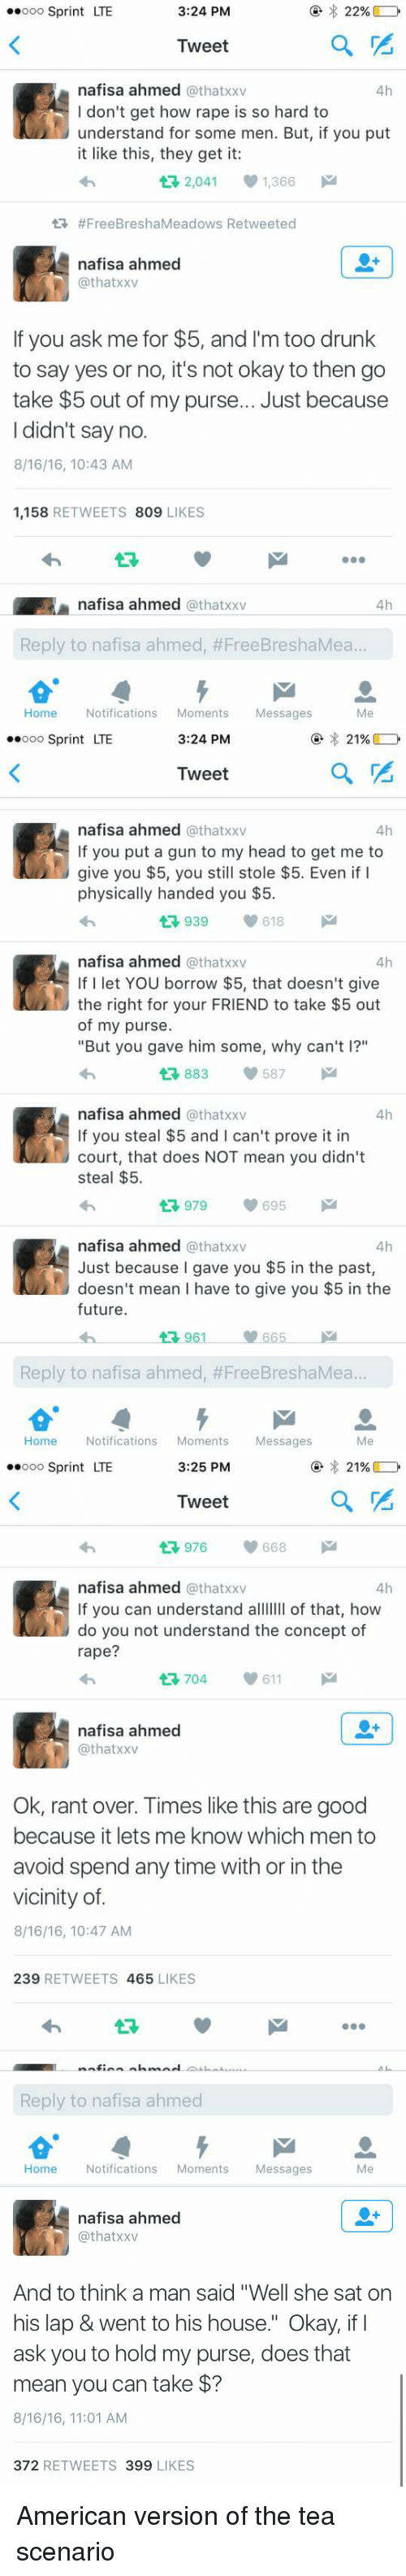 "Funny: 3:24 PM  ..ooo Sprint LTE  22%  a  Tweet  nafisa ahmed  athatxxv  4h  I don't get how rape is so hard to  understand for some men. But, if you put  it like this, they get it:  2,041 1,366  tR #Free BreshaMeadows Retweeted  nafisa ahmed  @thatxxv  If you ask me for $5, and I'm too drunk  to say yes or no, it's not okay to then go  take $5 out of my purse... Just because  I didn't say no.  8/16/16, 10:43 AM  1,158  RETWEETS 809  LIKES  A nafisa ahmed  @that xxv  4h  Reply to nafisa ahmed, ea..  Me  Home  Notifications  Moments  Messages   3:24 PM  ..ooo Sprint LTE  21%  Tweet  nafisa ahmed  athatxxv  4h  If you put a gun to my head to get me to  give you $5, you still stole $5. Even if I  physically handed you $5.  939 618  nafisa ahmed  @that xxv  4h  If I let YOU borrow $5, that doesn't give  the right for your FRIEND to take $5 out  of my purse.  ""But you gave him some, why can't l?""  587  t 883  nafisa ahmed  athatxxv  4h  If you steal $5 and I can't prove it in  court, that does NOT mean you didn't  steal $5.  695  M  nafisa ahmed  @that xxv  4h  Just because I gave you $5 in the past,  doesn't mean l have to give you $5 in the  future.  961 665  Reply to nafisa ahmed, #FreeBreshaMea...  Me  Home  Notifications  Moments  Messages   ..ooo Sprint LTE  3:25 PM  21%  Tweet  976  668  nafisa ahmed  athatxxv  4h  If you can understand a  of that, how  do you not understand the concept of  rape?  611  nafisa ahmed  @that xxv  Ok, rant over. Times like this are good  because it lets me know which men to  avoid spend any time with or in the  vicinity of  8/16/16, 10:47 AM  239  RETWEETS  465  LIKES  Reply to nafisa ahmed  Home  Notifications  Moments  Messages   nafisa ahmed  Cathatxxv  And to think a man said ""Well she sat on  his lap & went to his house."" Okay, if I  ask you to hold my purse, does that  mean you can take  8/16/16, 11:01 AM  372  RETWEETS 399 LIKES American version of the tea scenario"